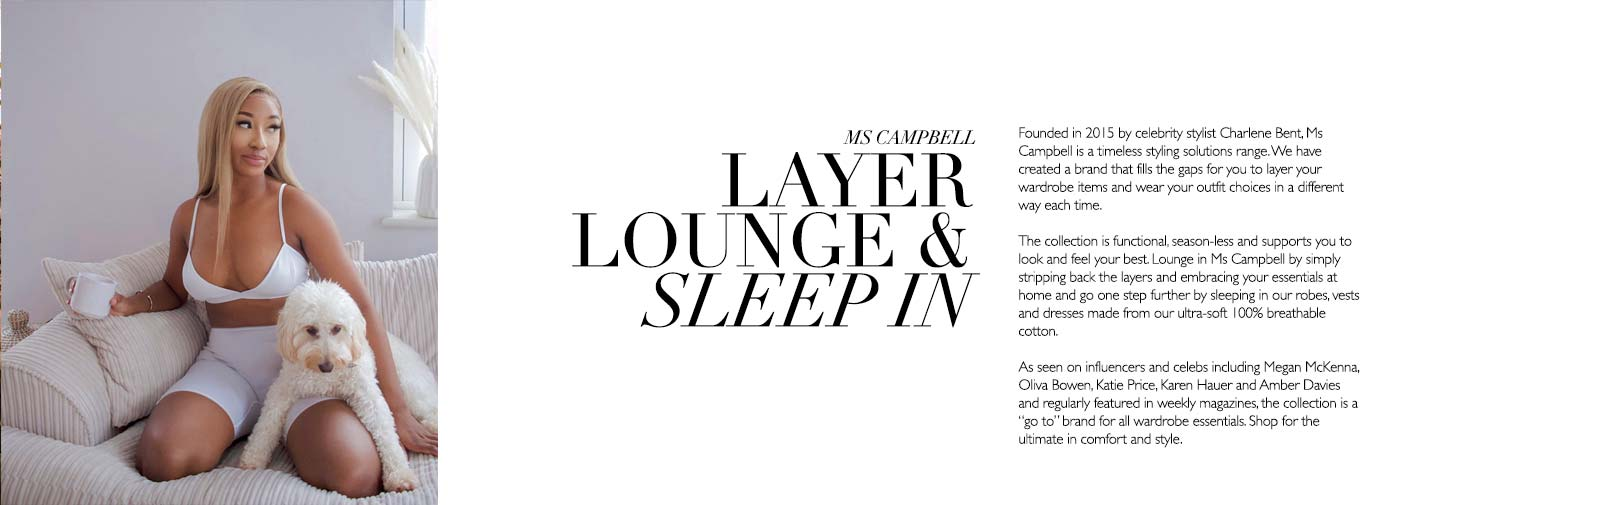 MS CAMPBELL - LAYER LOUNGE & SLEEP IN - Founded in 2015 by celebrity stylist Charlene Bent, Ms Campbell is a timeless styling solutions range. We have created a brand that fills the gaps for you to layer your wardrobe items and wear your outfit choices in a different way each time.